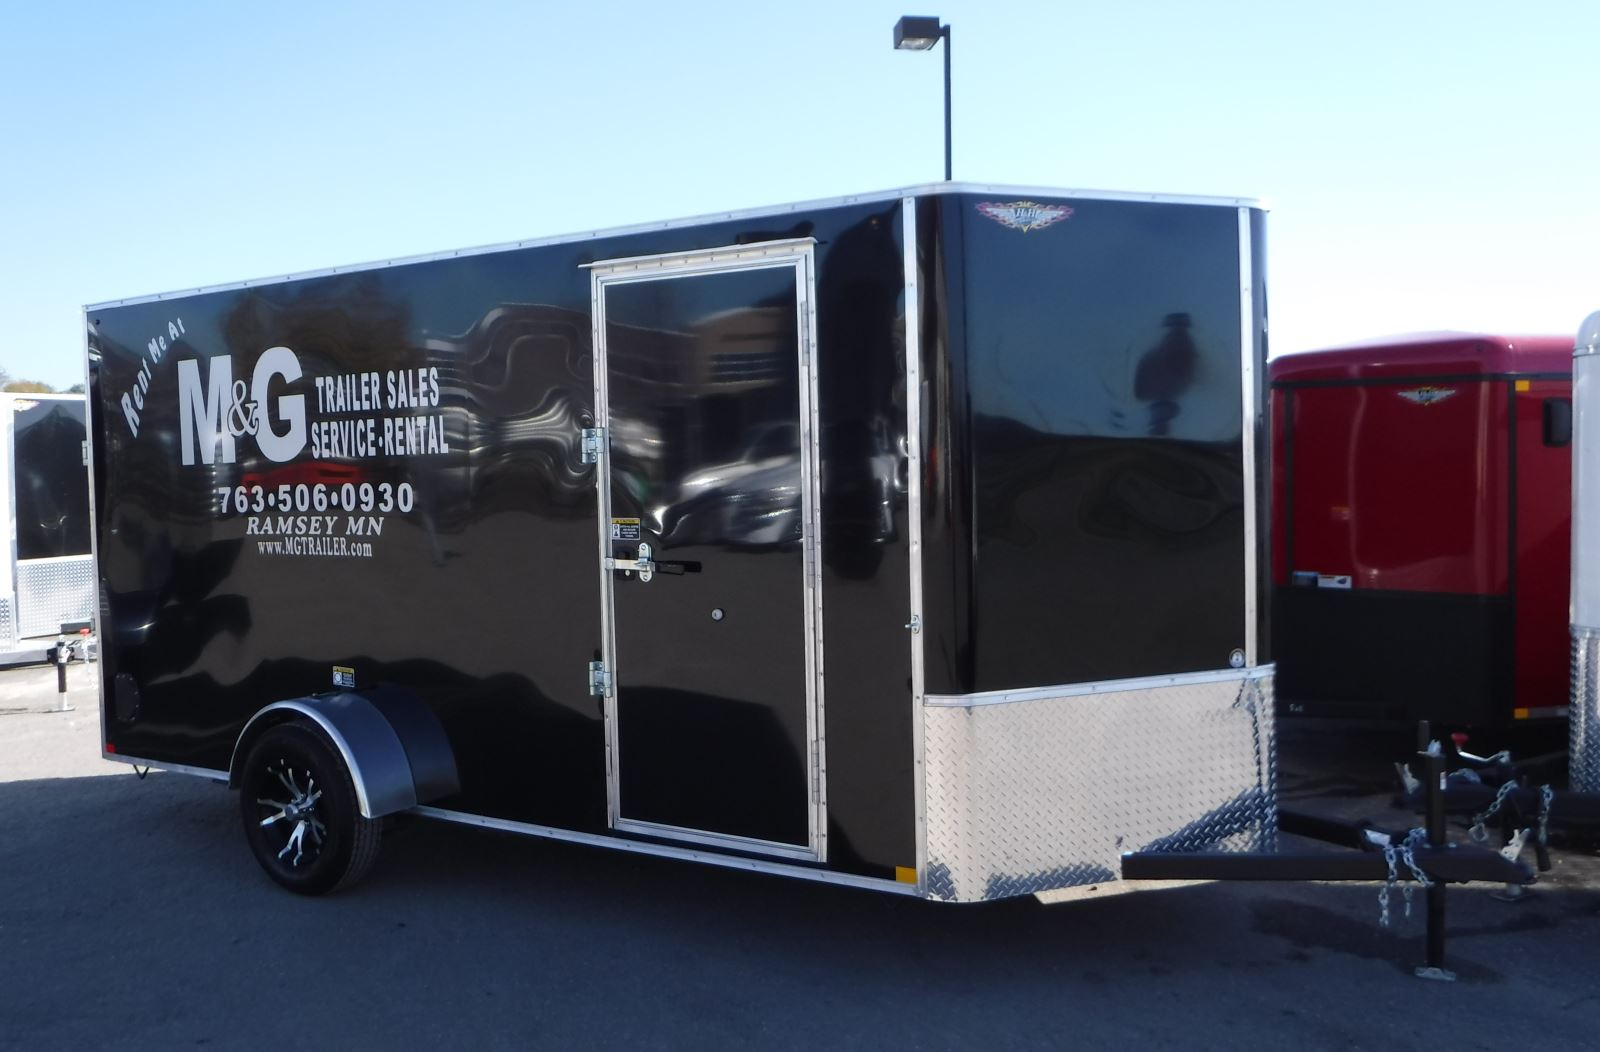 6 x 14 single axle enclosed trailer rental